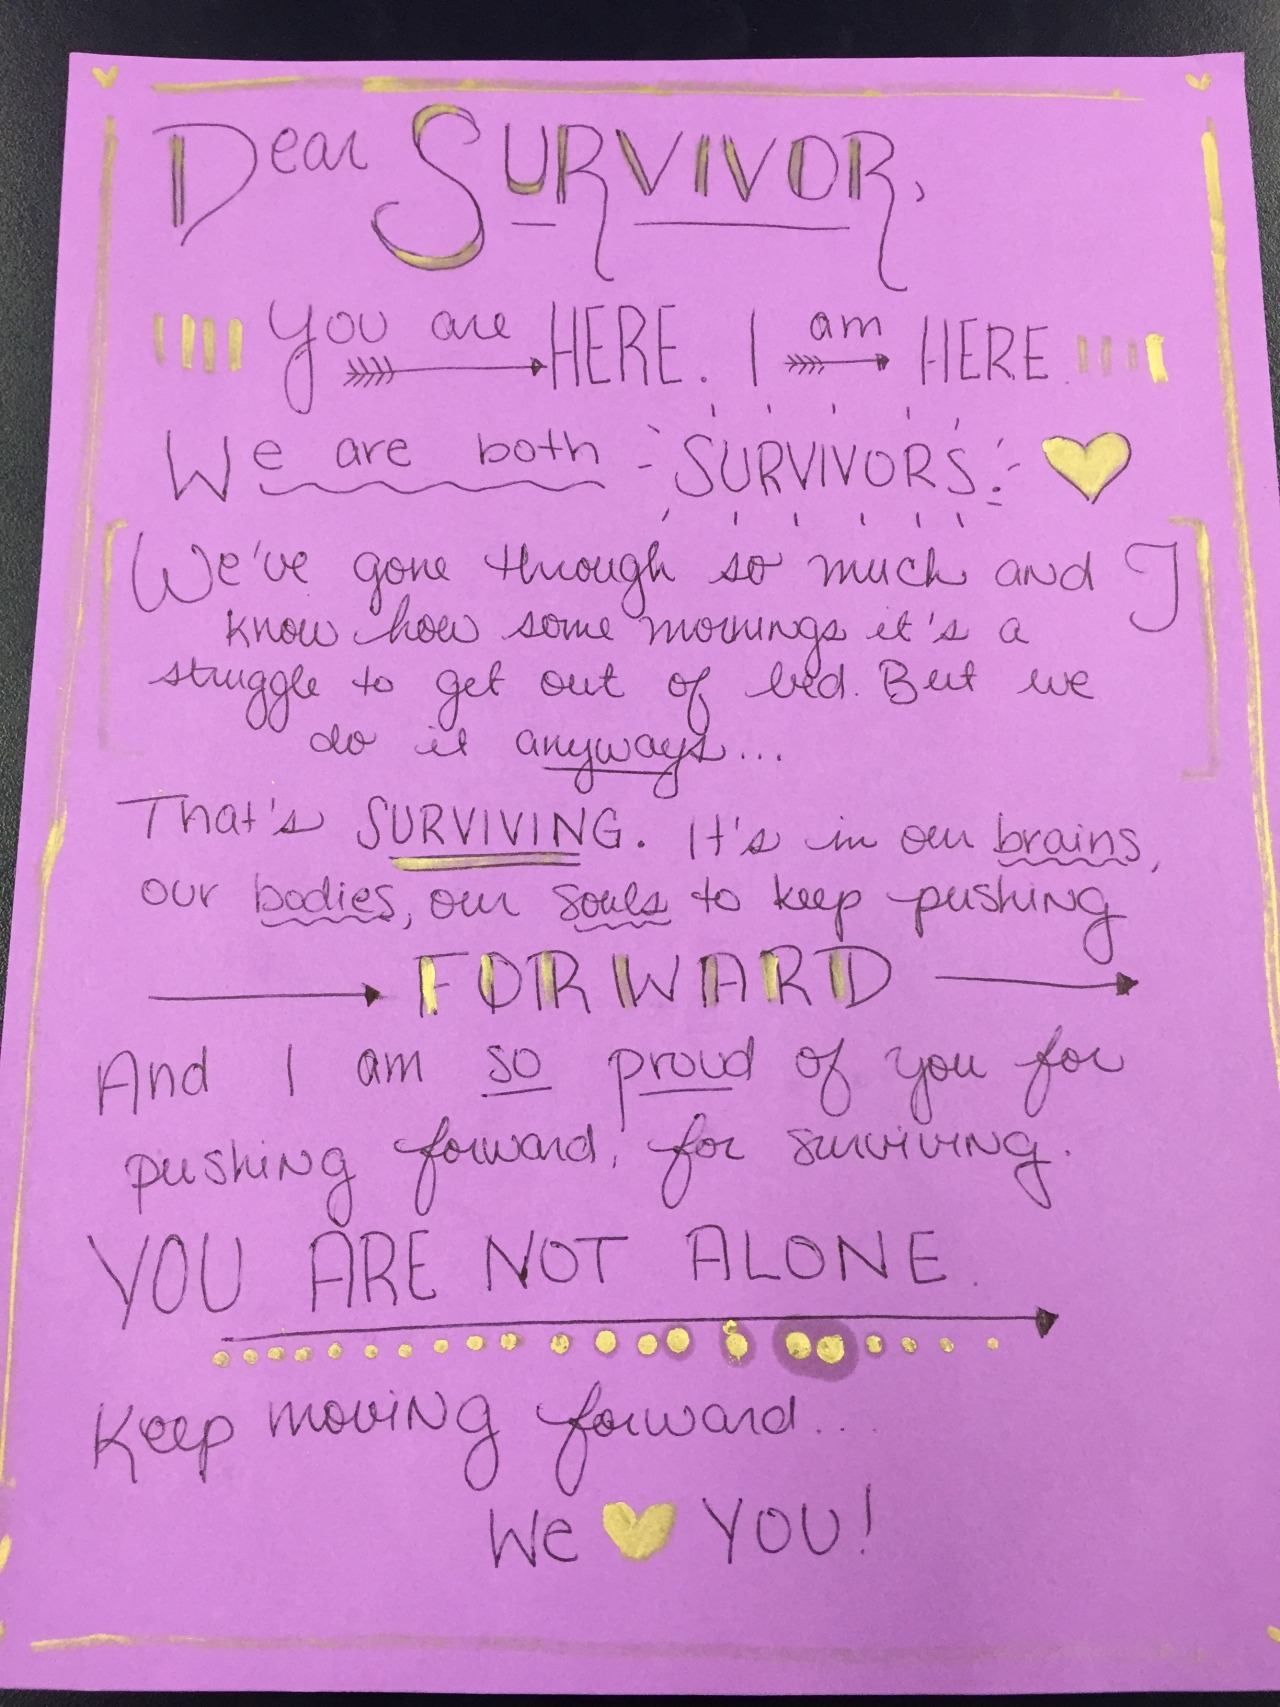 Dear Survivor,   You are here. I am here. We are both survivors. We've gone through so much and I know how some mornings it's a struggle to get out of bed. But we do it anyways…   That's surviving. It's in our brains, our bodies, our souls to keep pushing forward. And I am so proud of you for pushing forward, for surviving. You are not alone. Keep moving forward.   We love you!